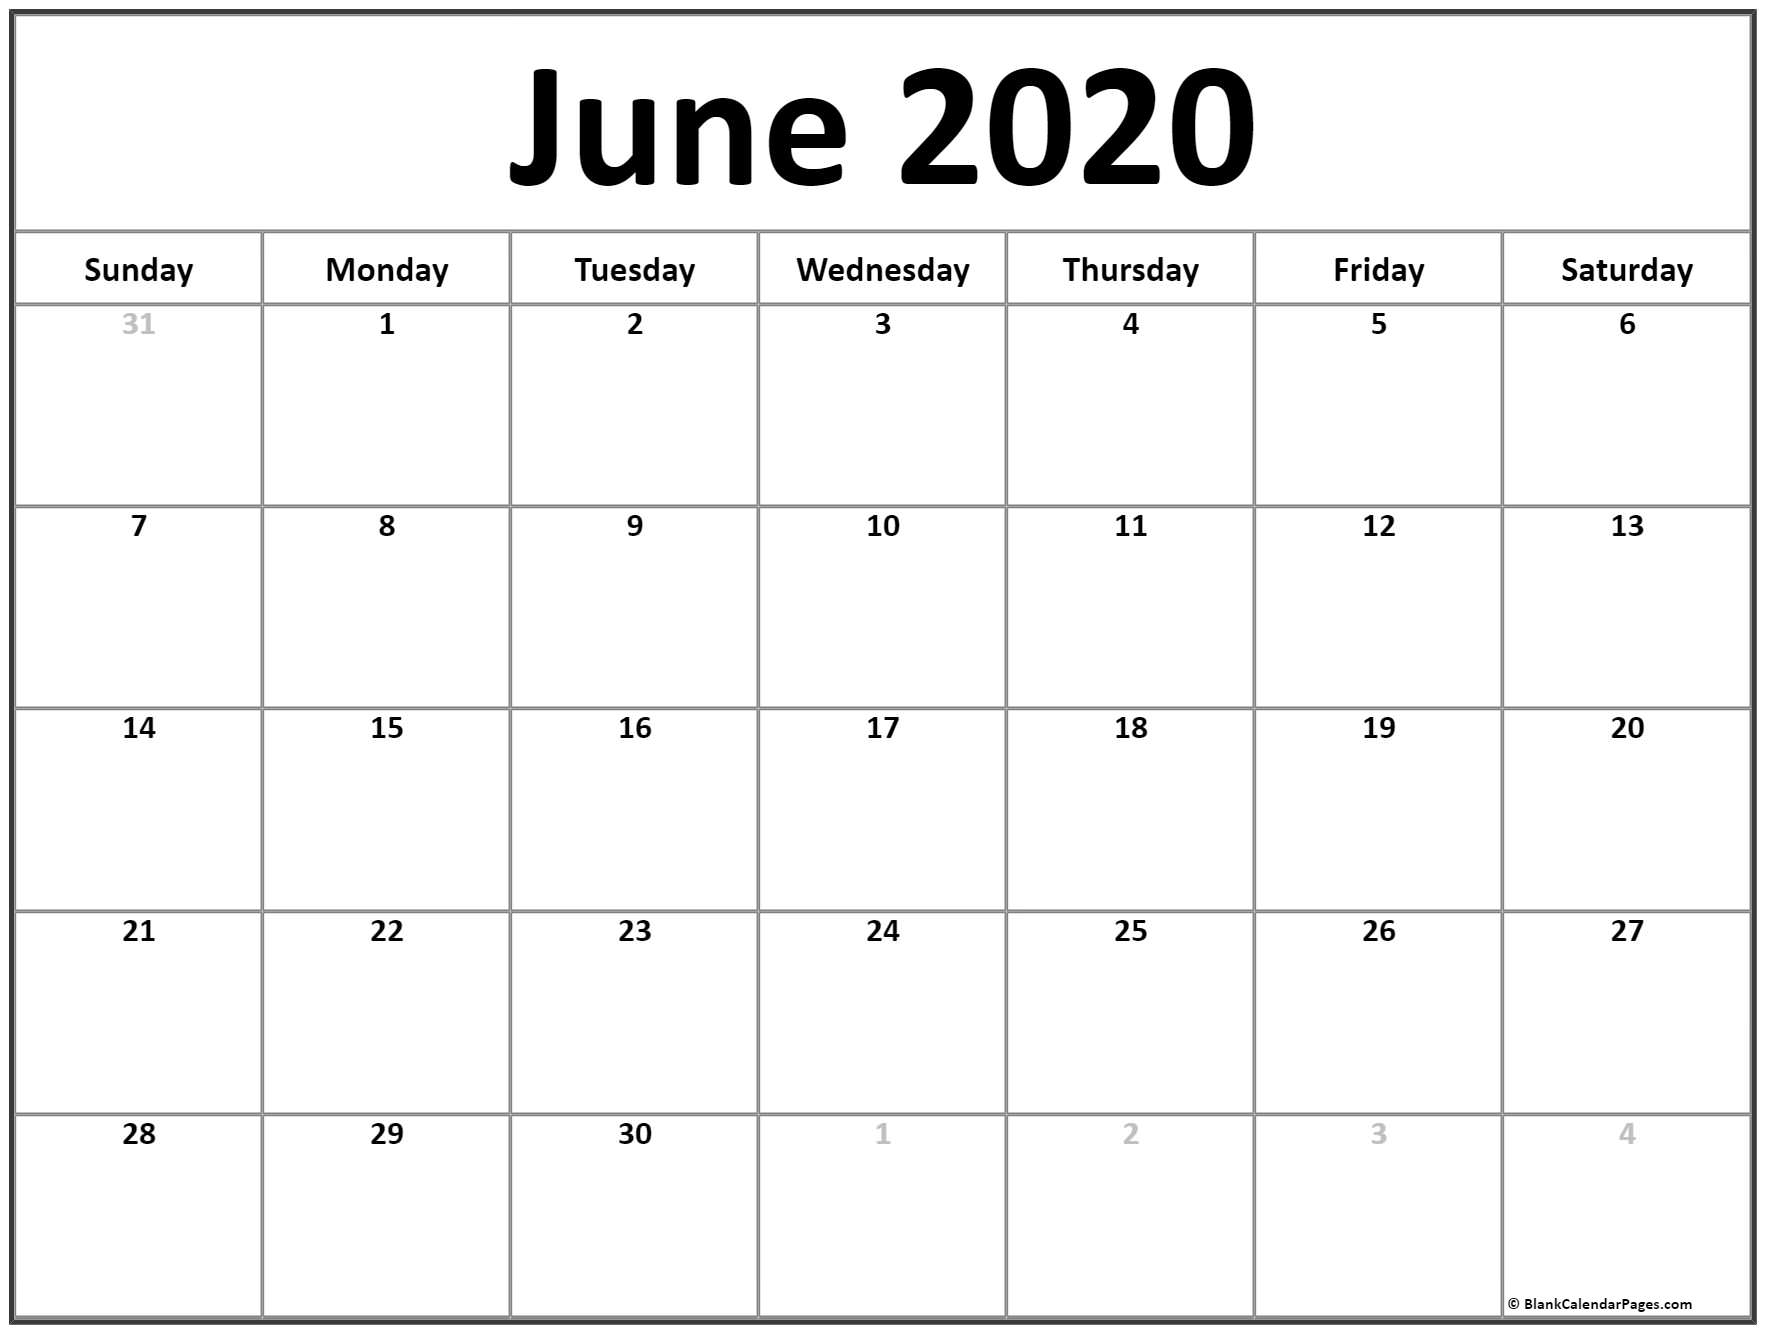 June 2020 Calendar | Free Printable Monthly Calendars within Calendar Maker July 2019-June 2020